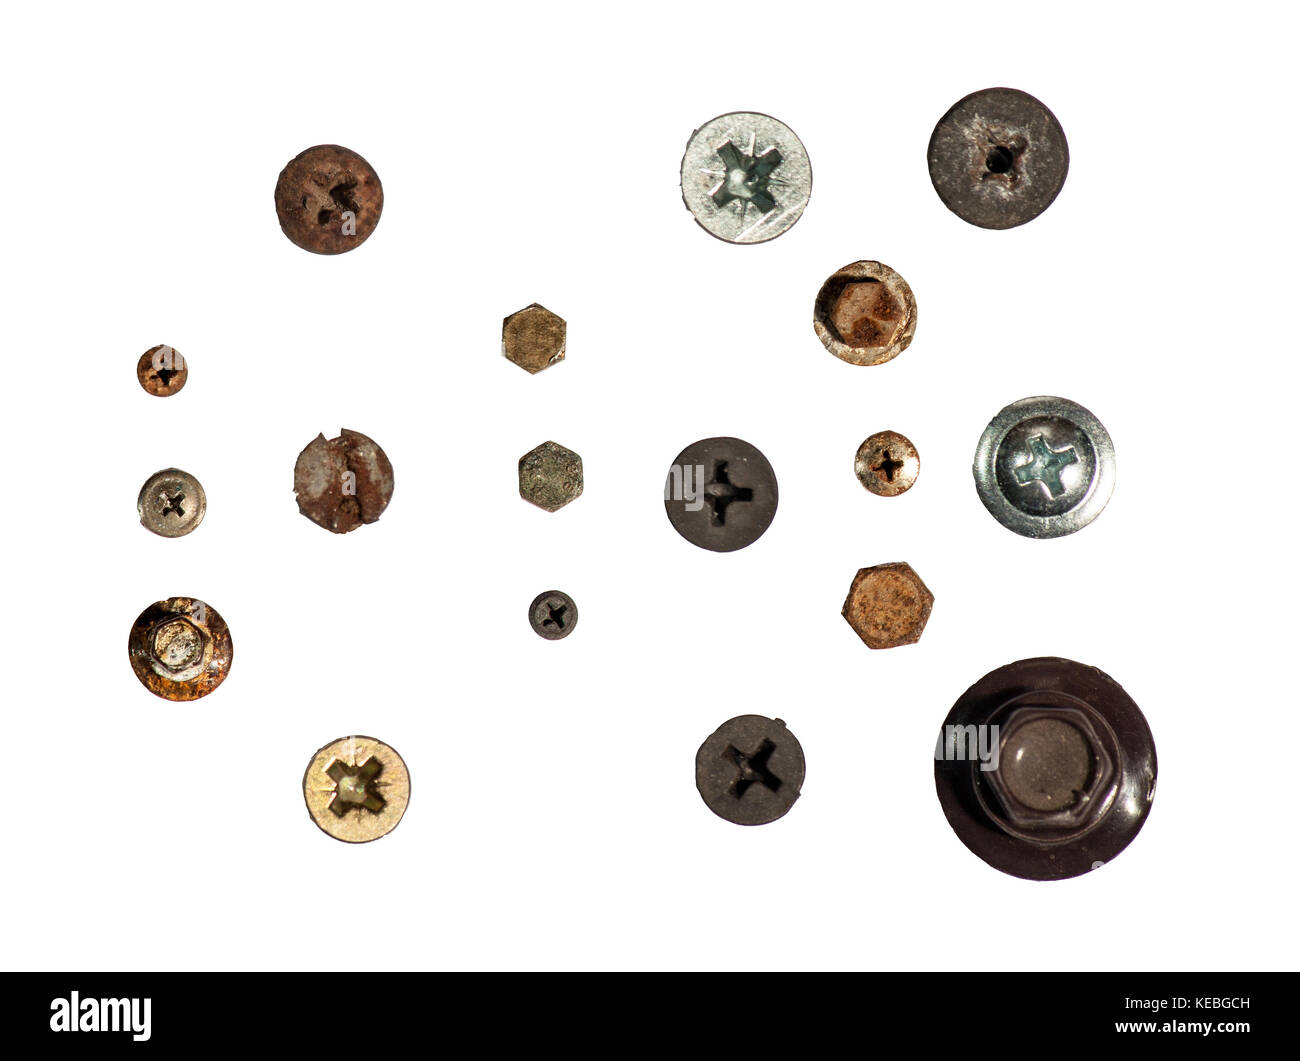 A pile of nuts,bolts, screws and other fasteners on a white background Stock Photo